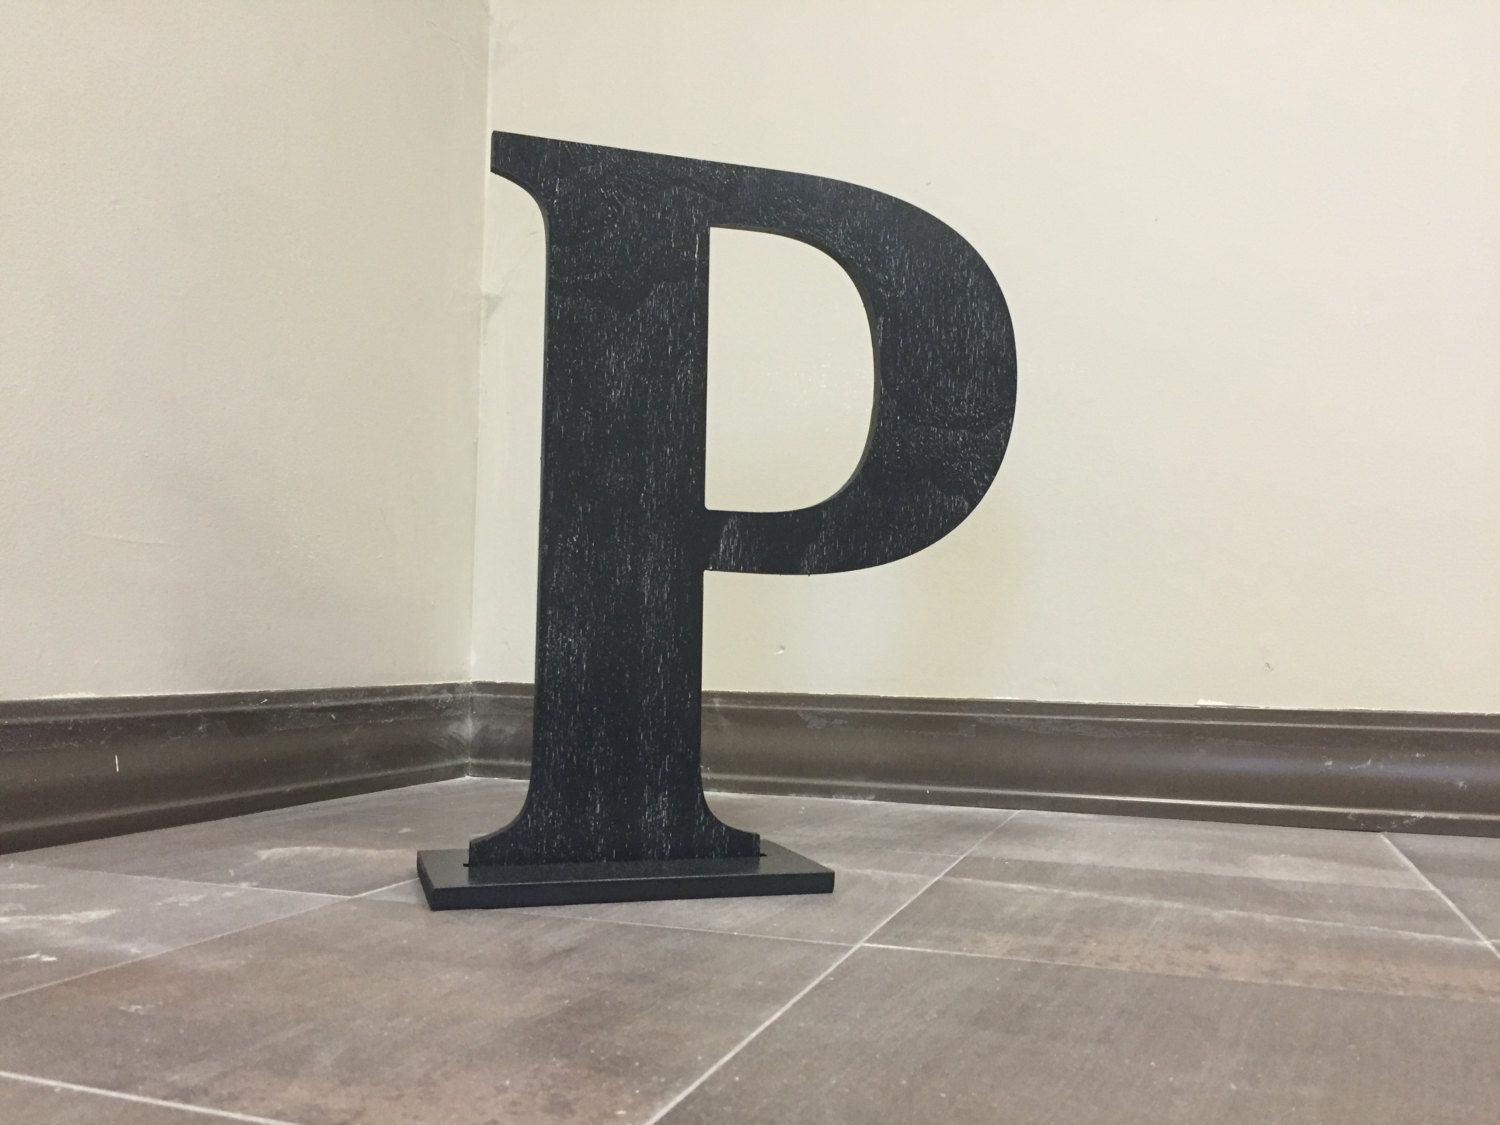 Ordinaire Rustic Letter P, Large Free Standing Monogram Letter, Home Letter Decor,  Wall Hanging